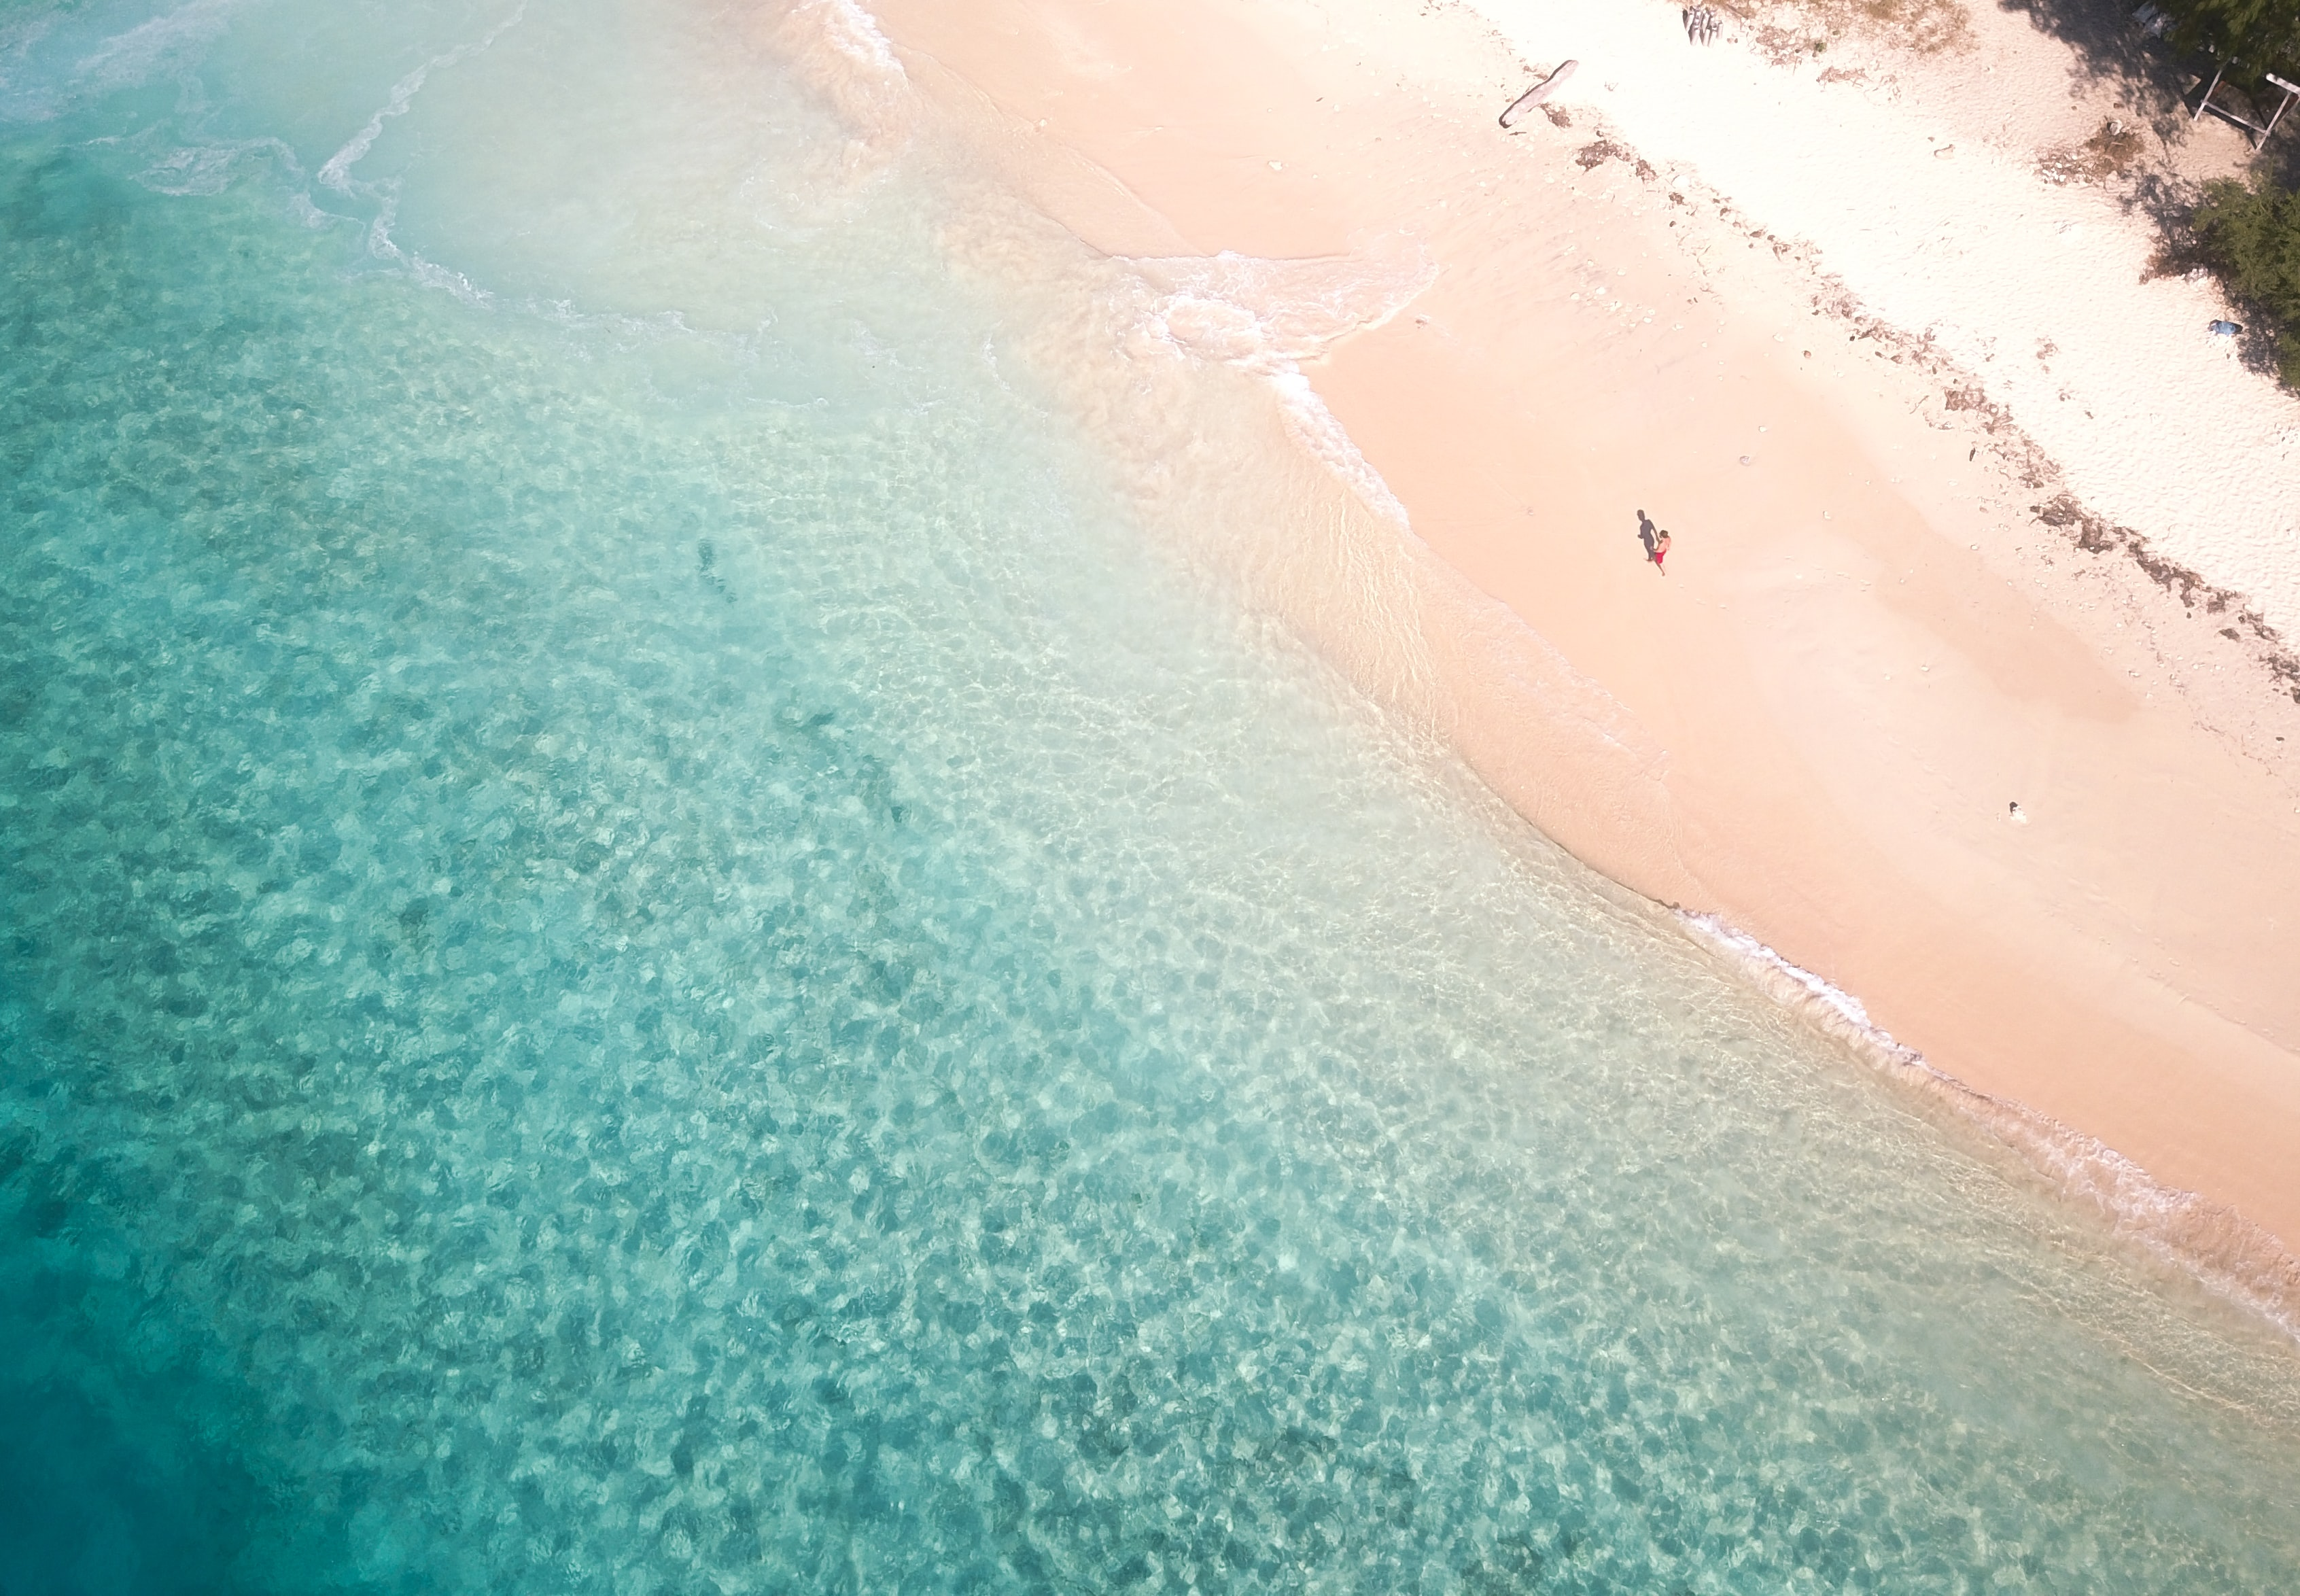 areal photography of person on white sand beach